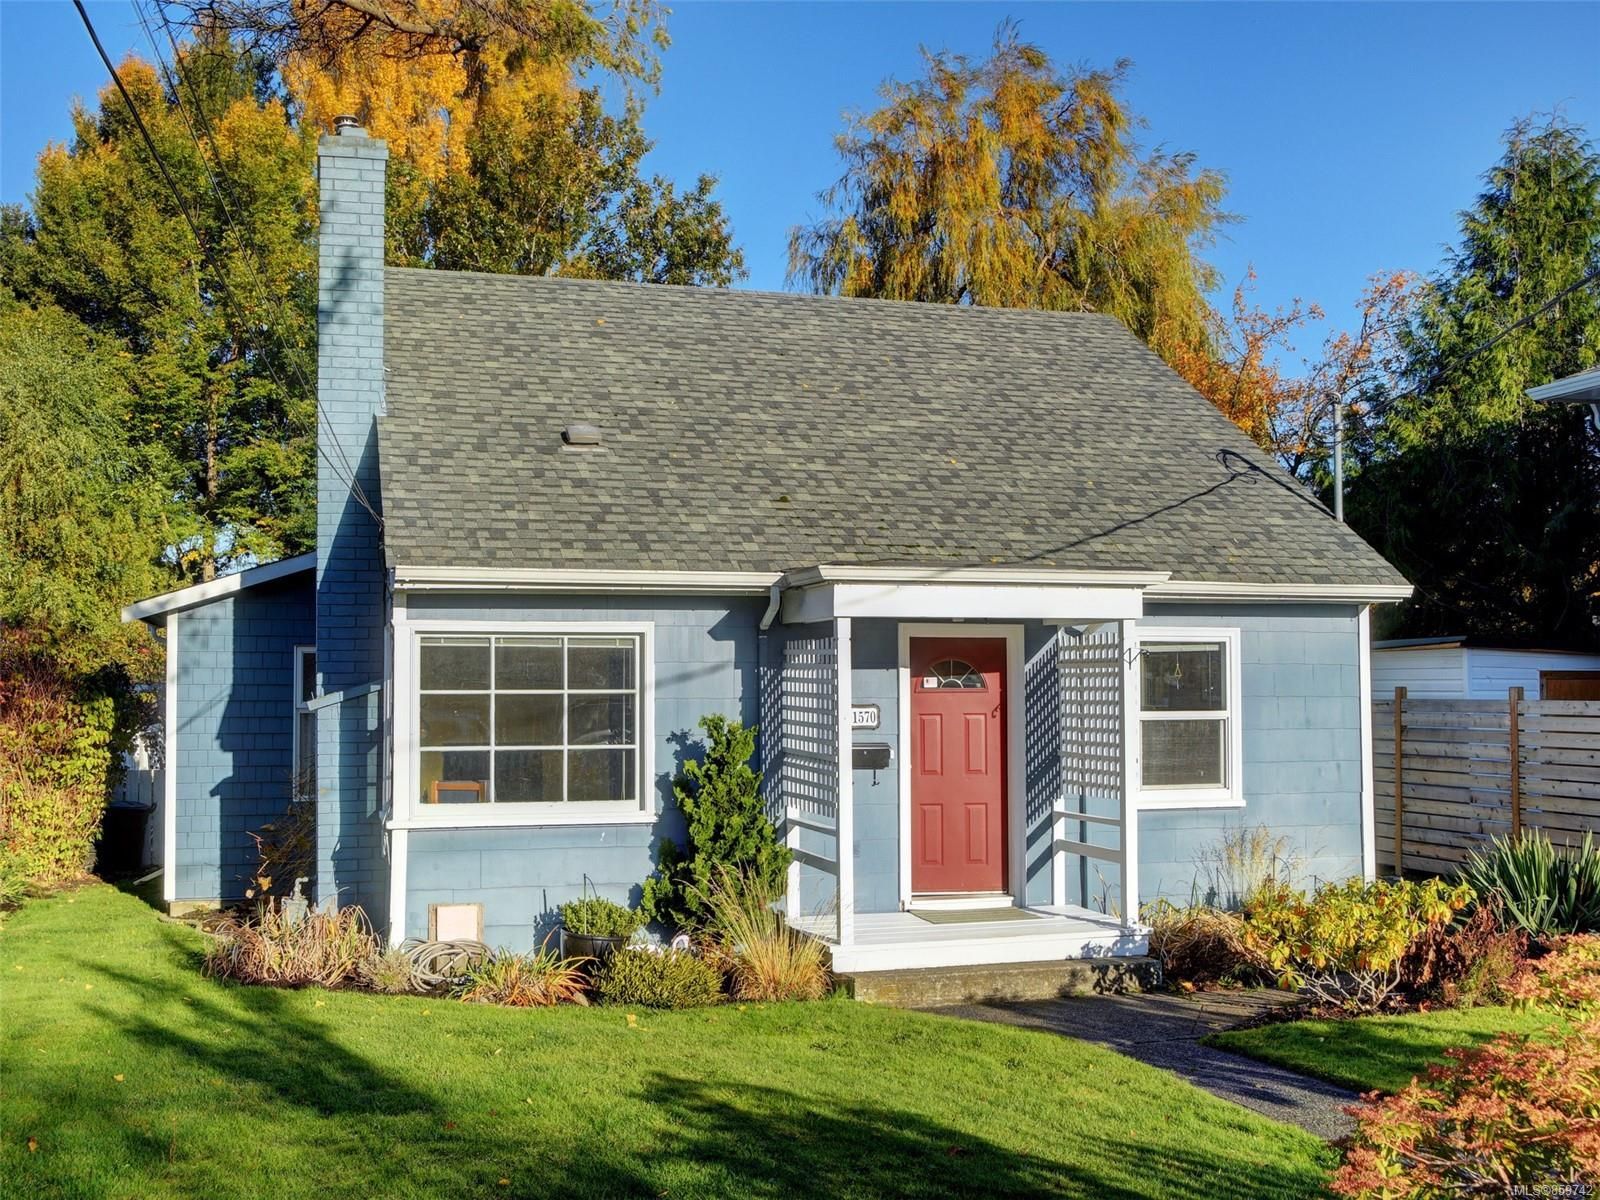 Main Photo: 1570 Clawthorpe Ave in : Vi Oaklands House for sale (Victoria)  : MLS®# 859742